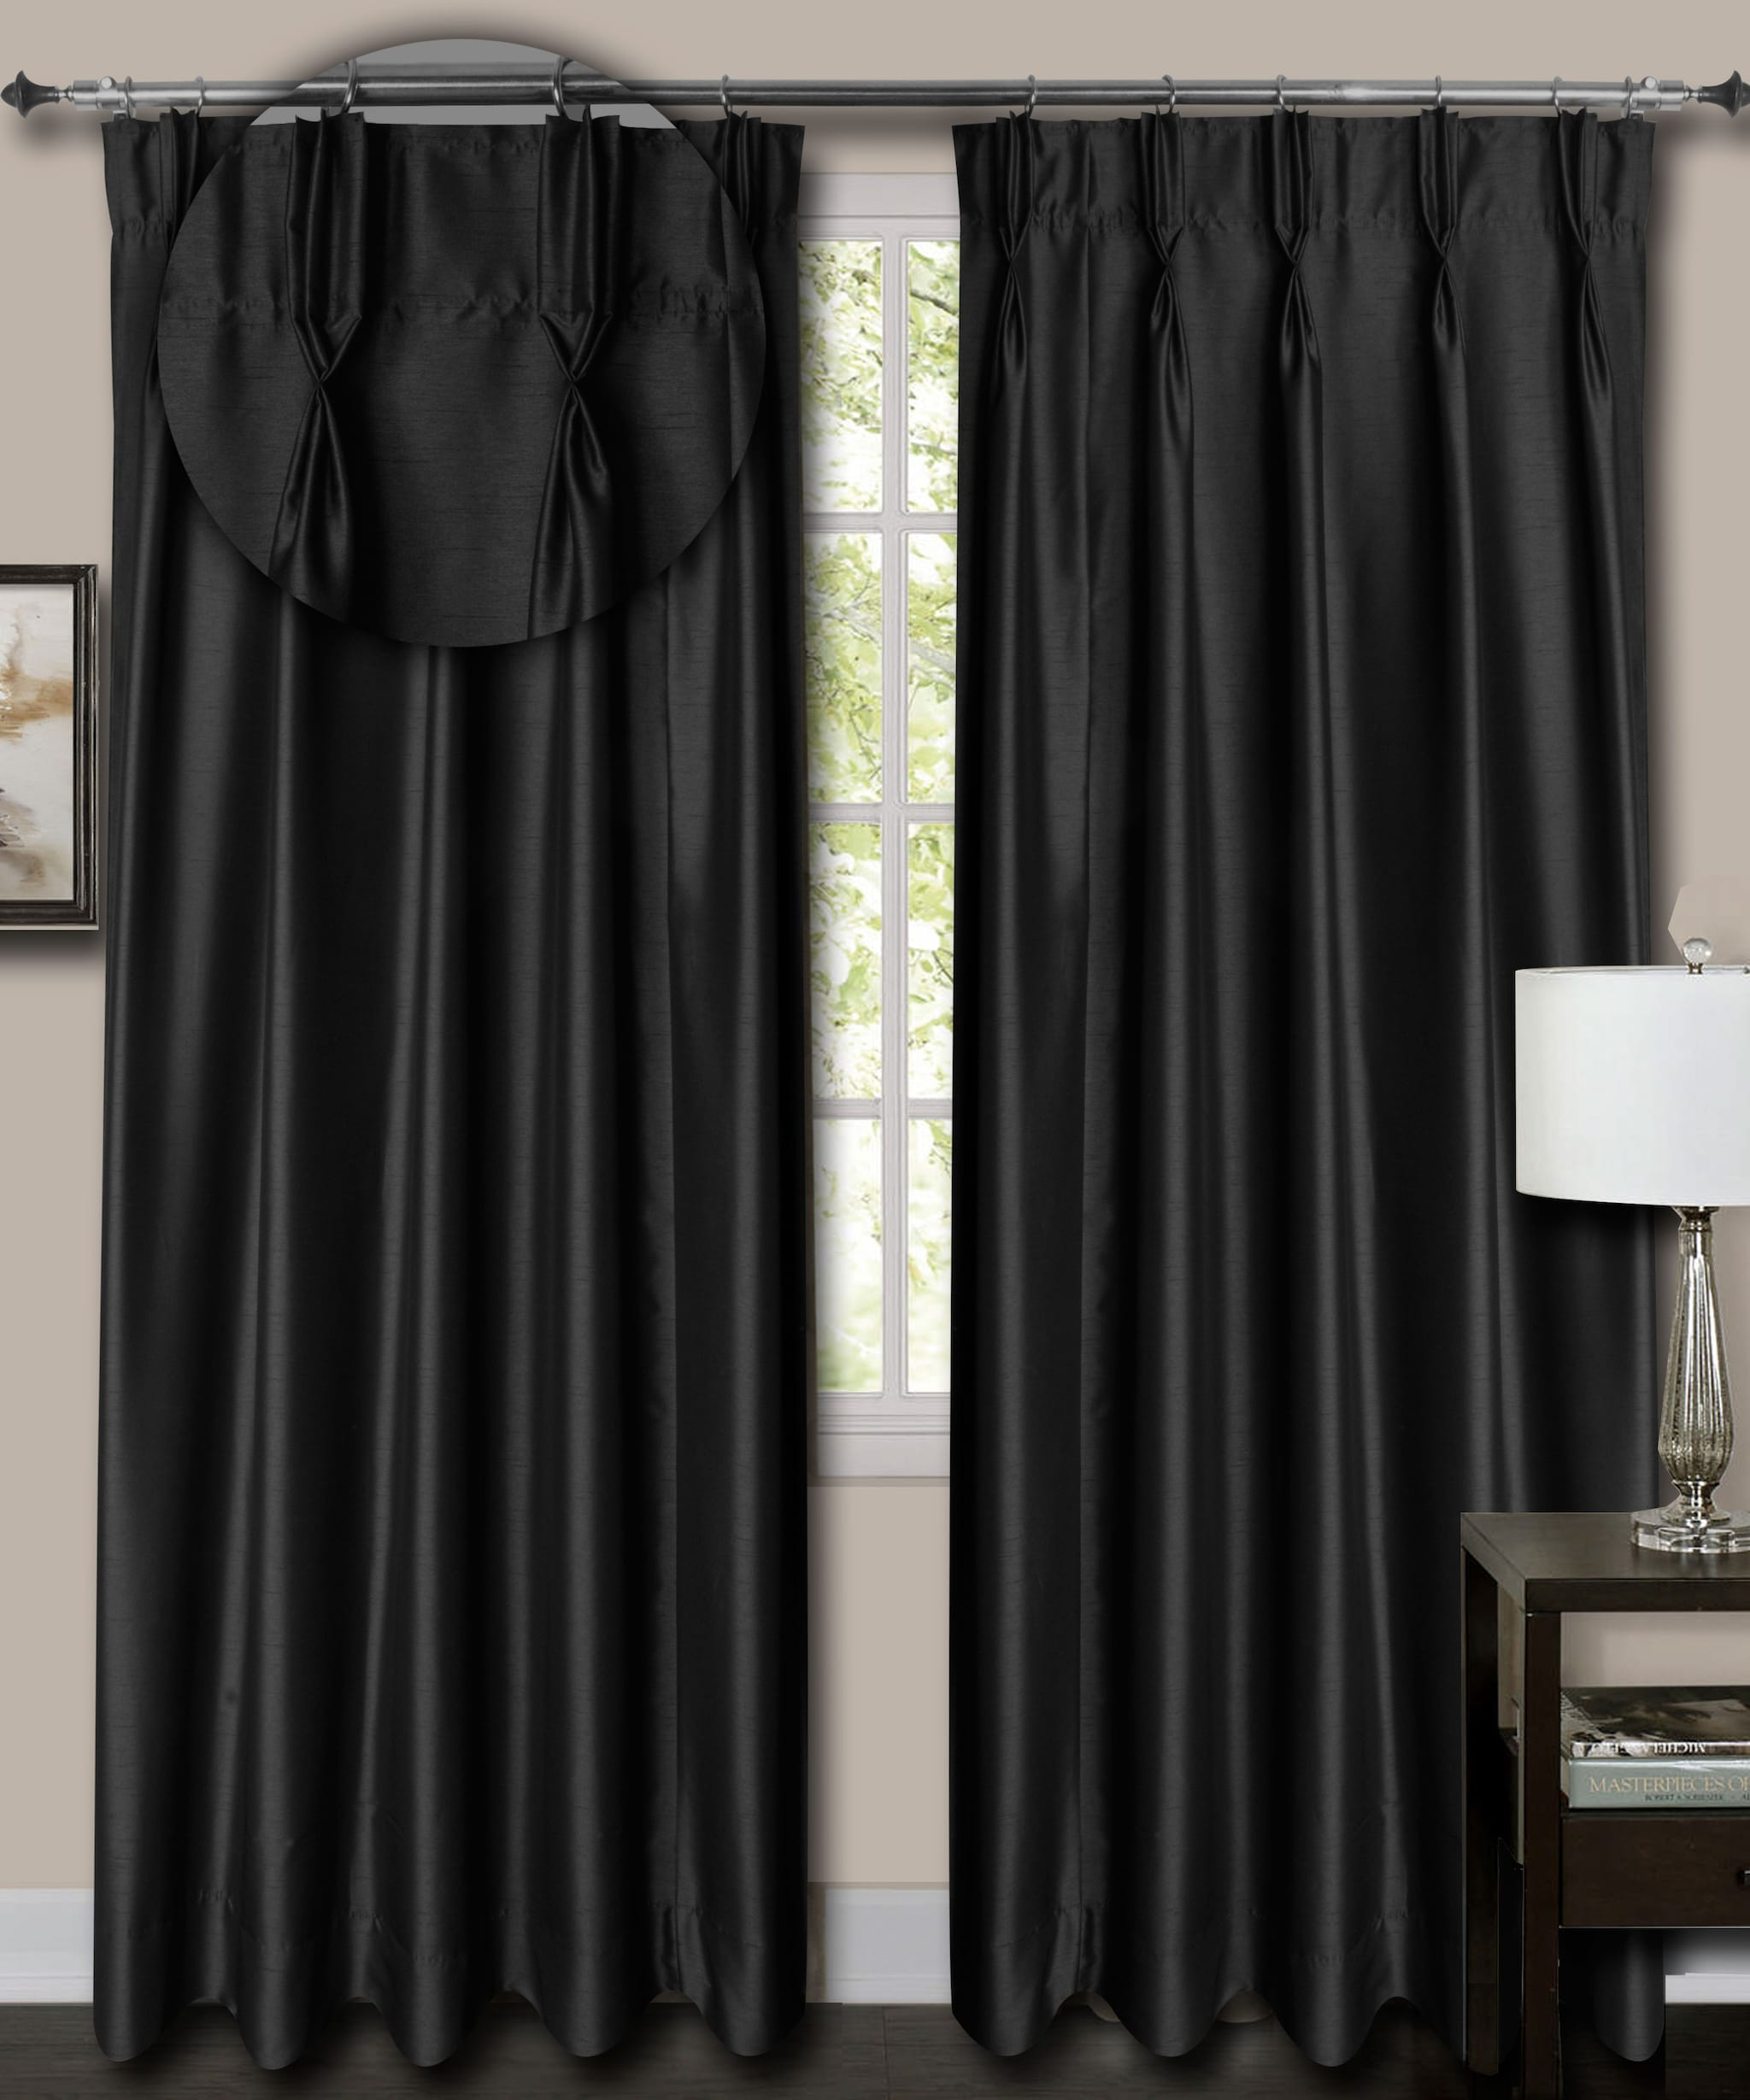 "French Pleat Top Black Faux Silk Dupioni Curtains. (39"" Wide,10 Feet Long,Without Lining)"